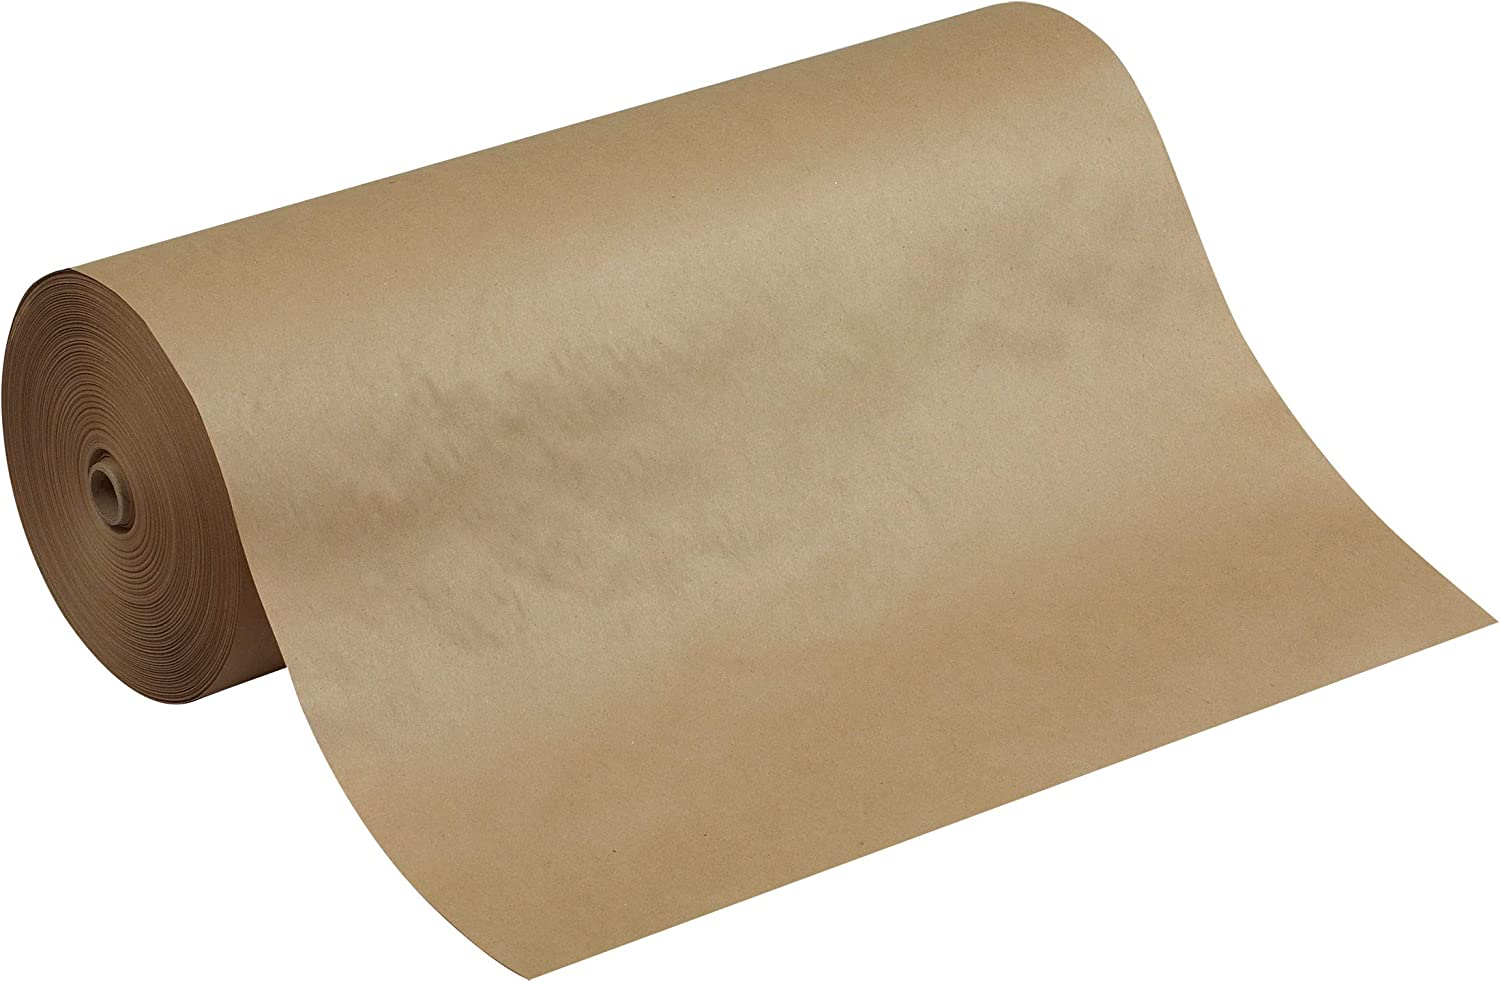 "Pacon 5824 Kraft Paper Roll, 50 lbs., 24"" x 1000 ft, Natural,Brown"